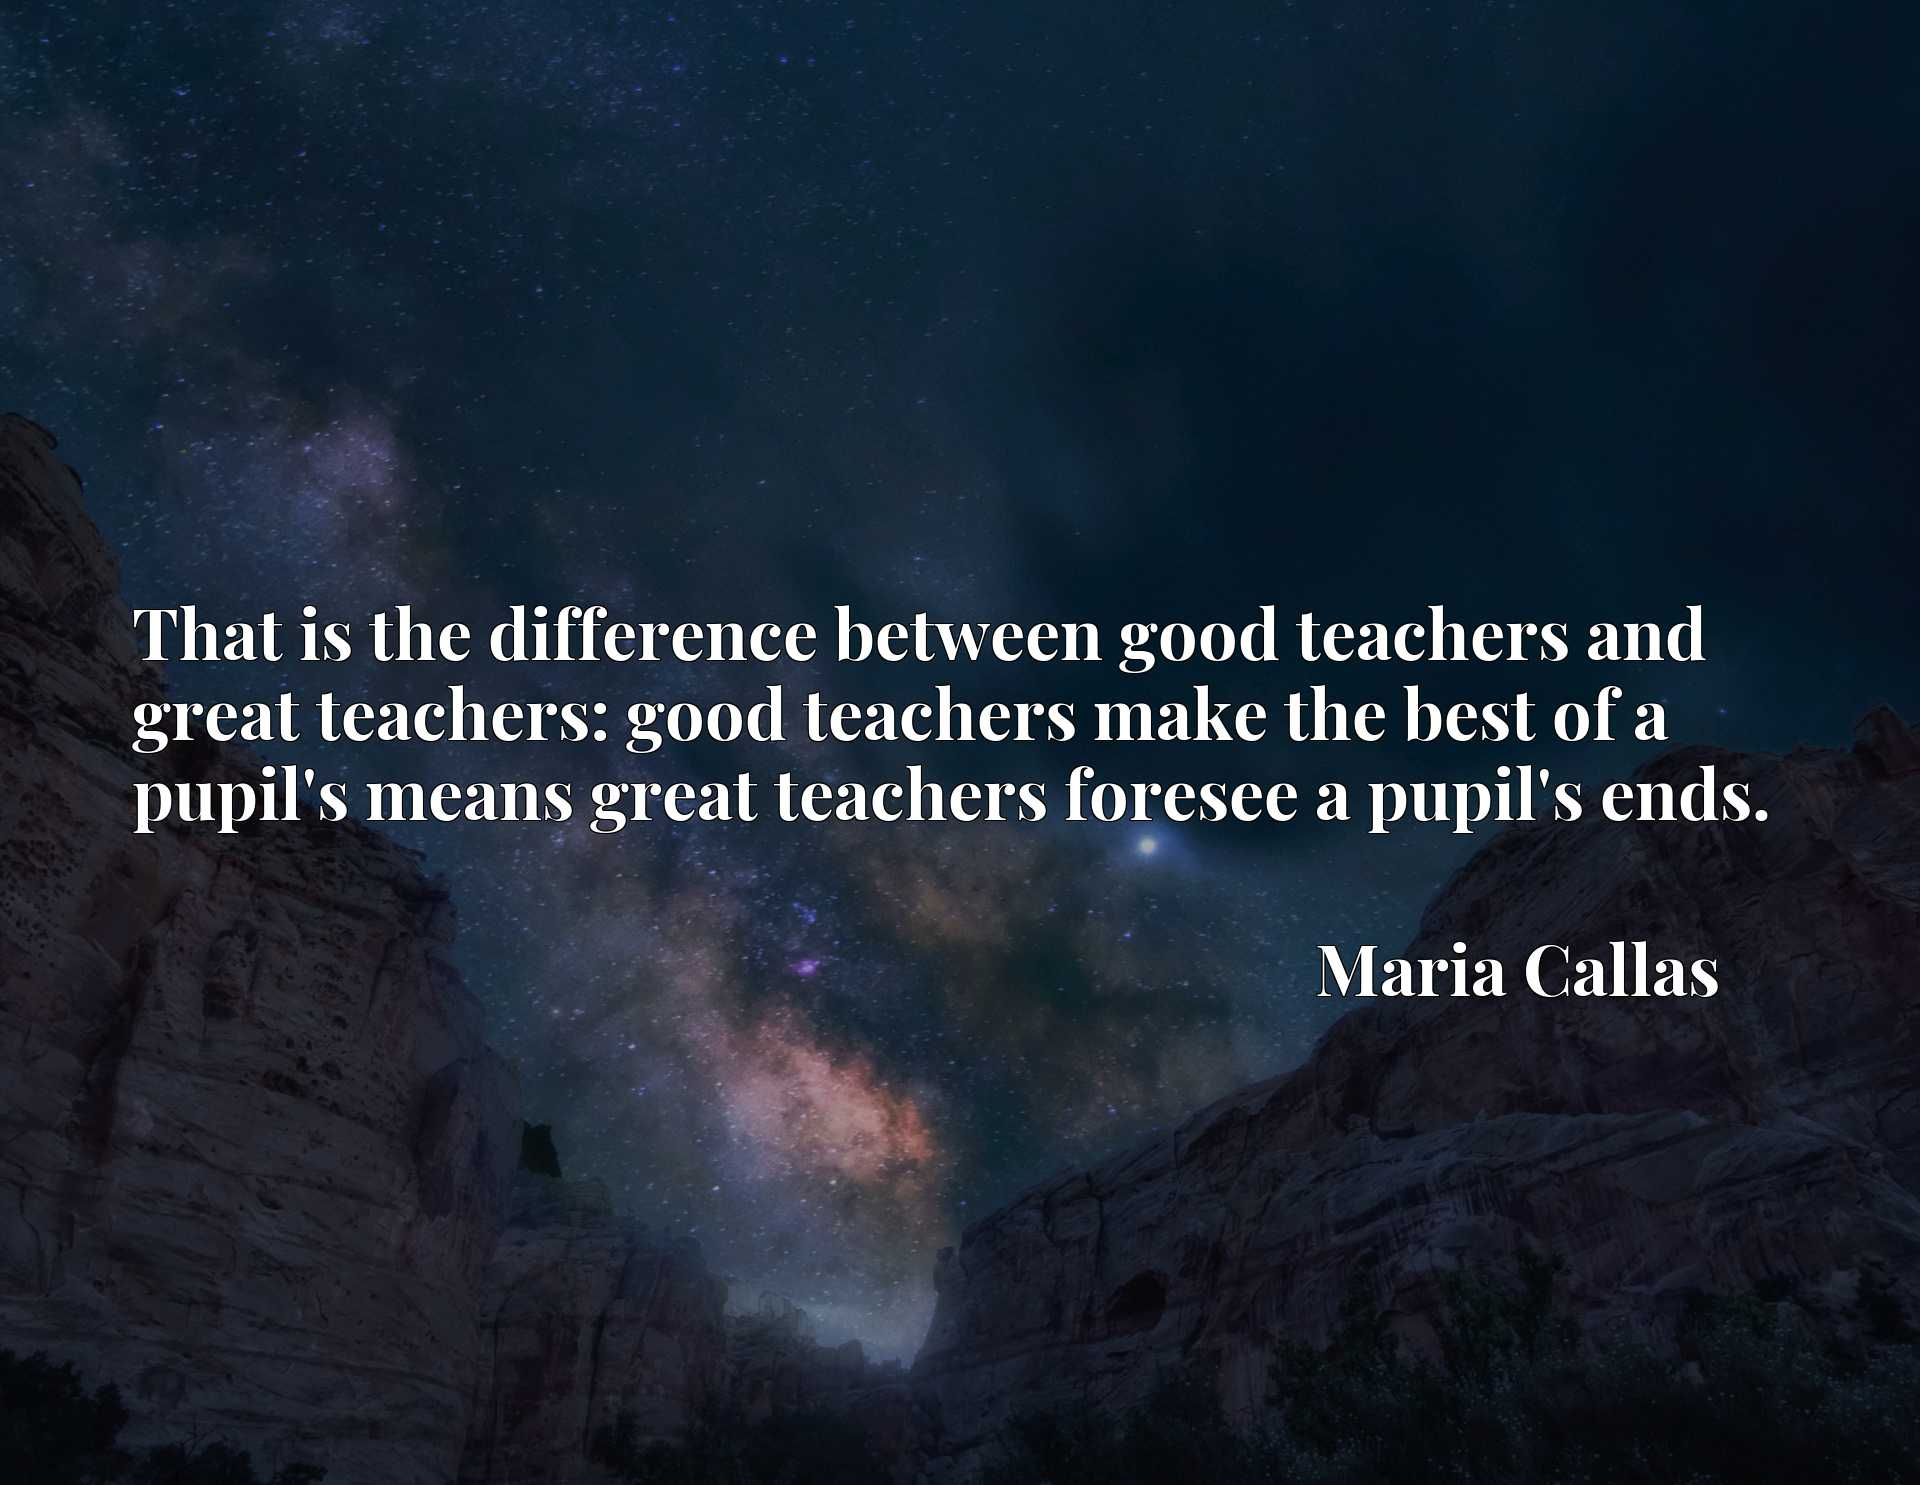 That is the difference between good teachers and great teachers: good teachers make the best of a pupil's means great teachers foresee a pupil's ends.